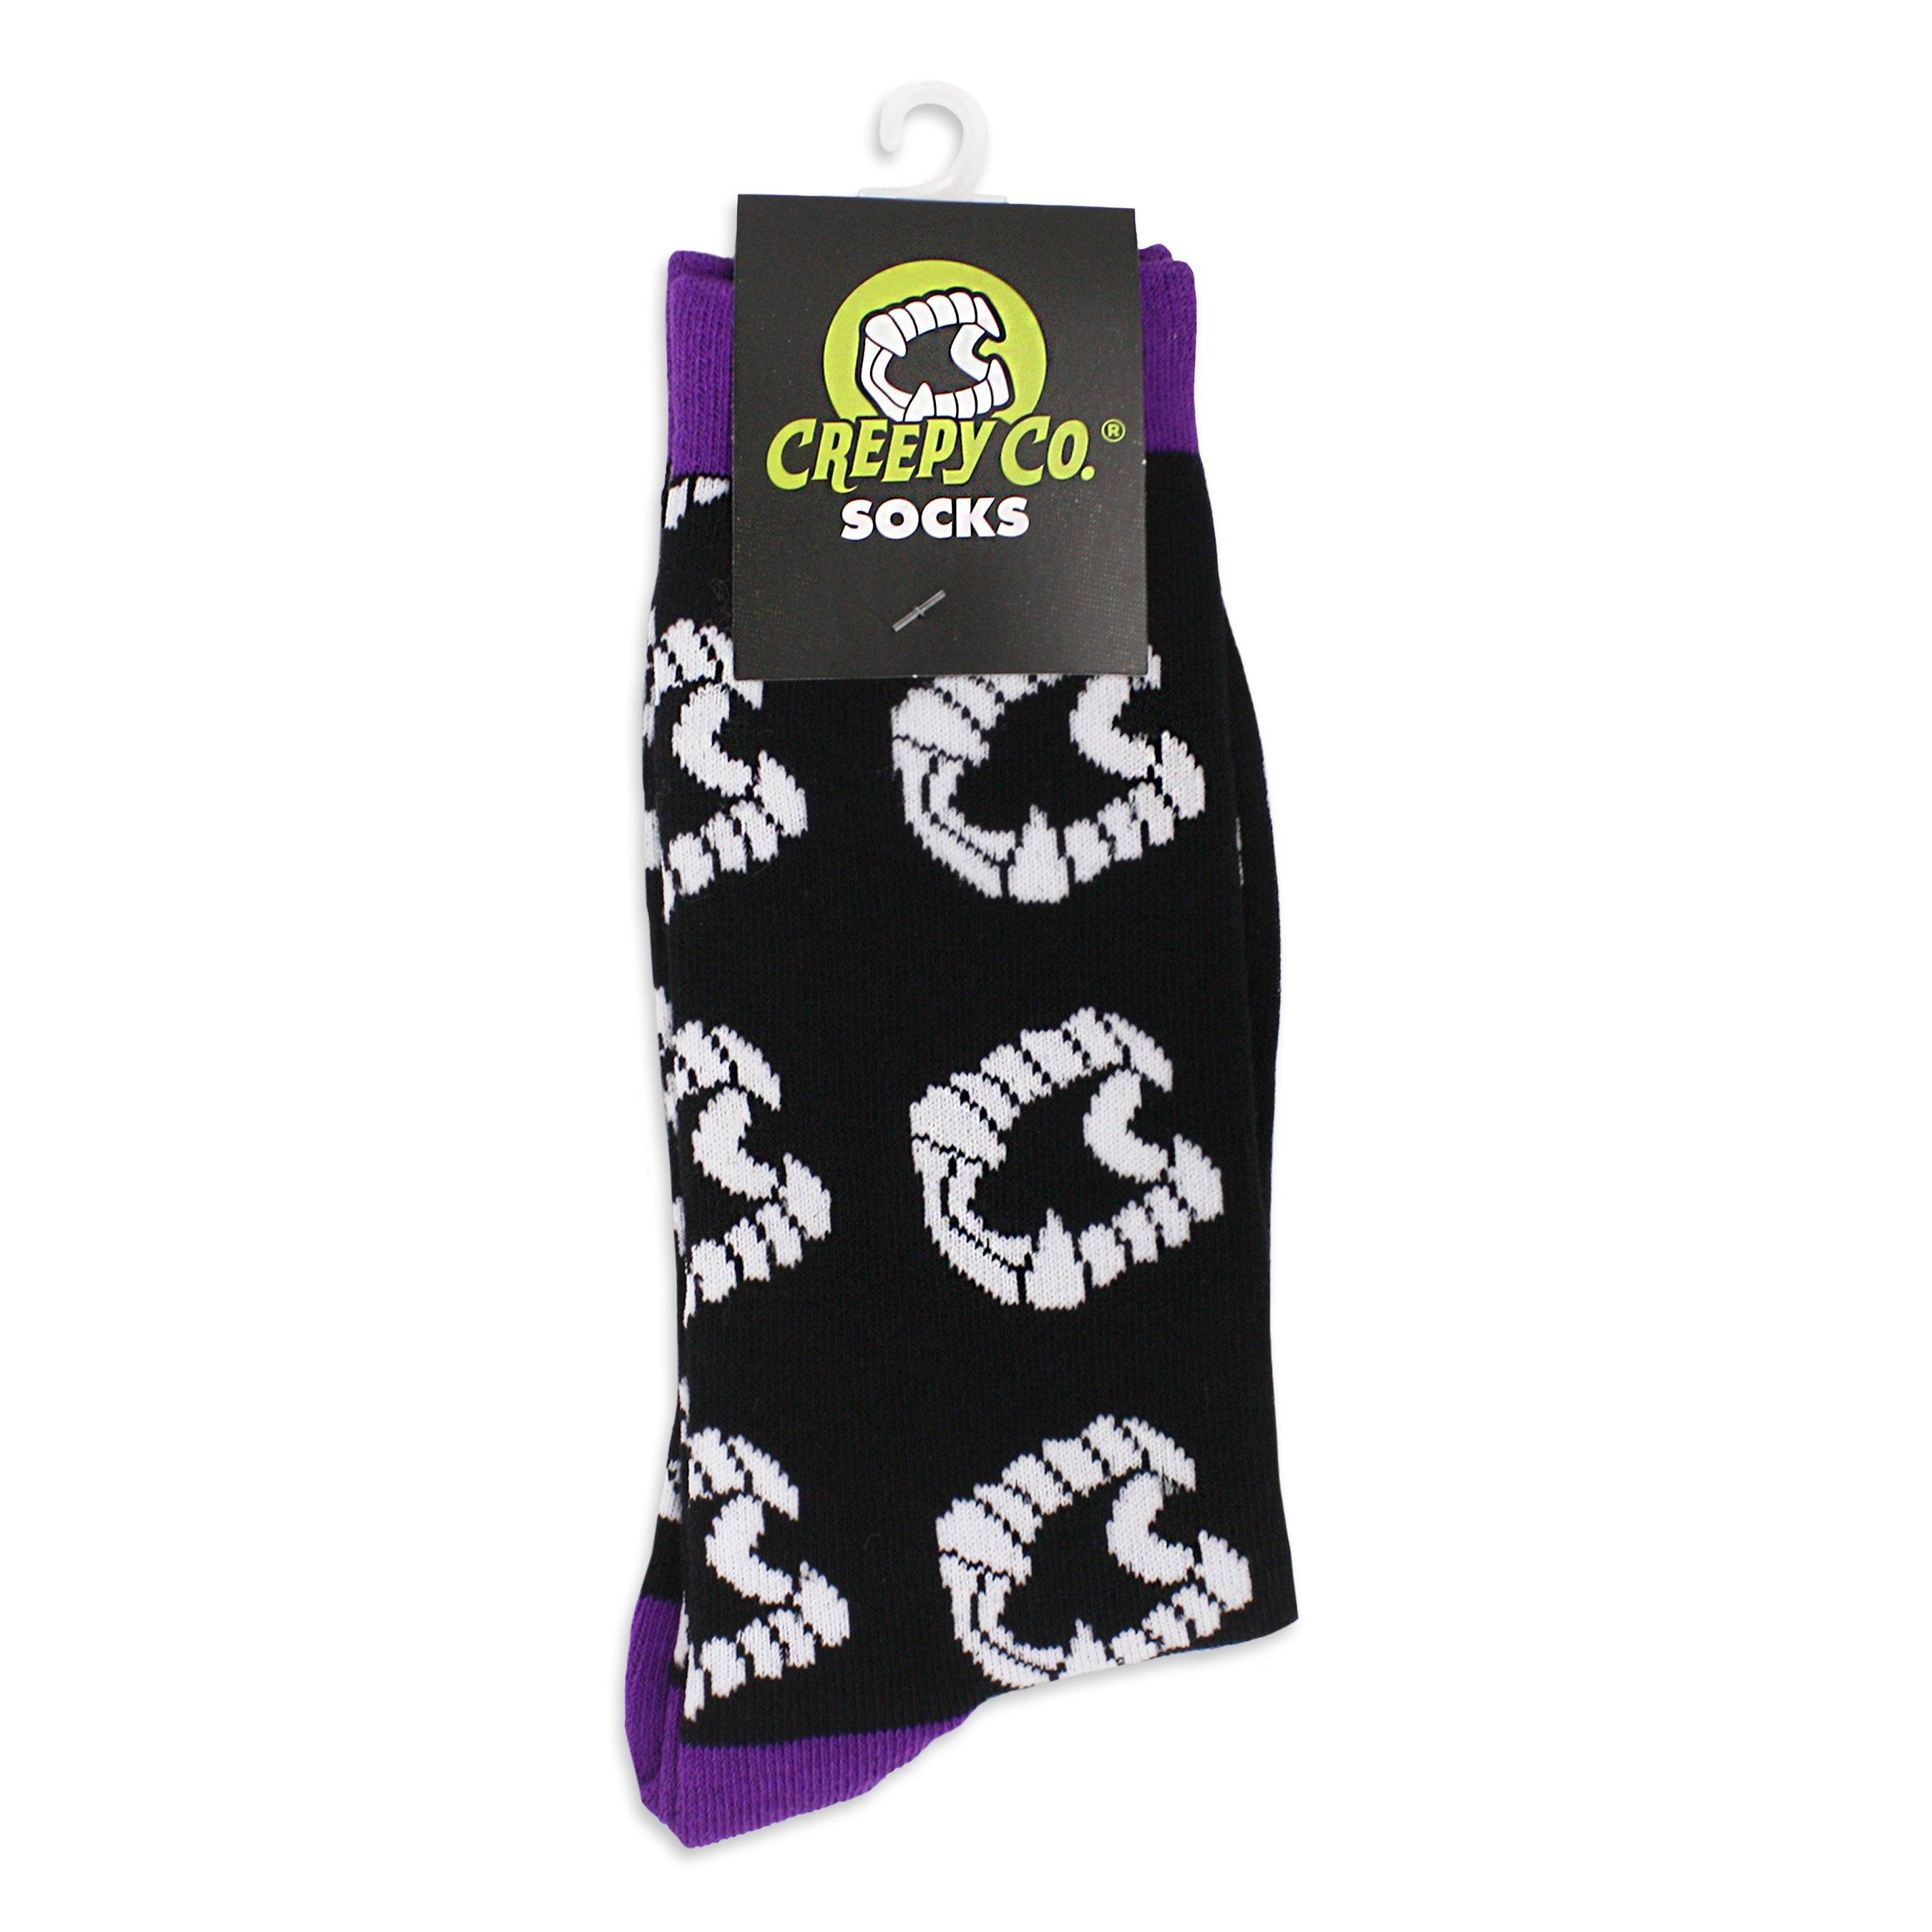 Chompers® Socks